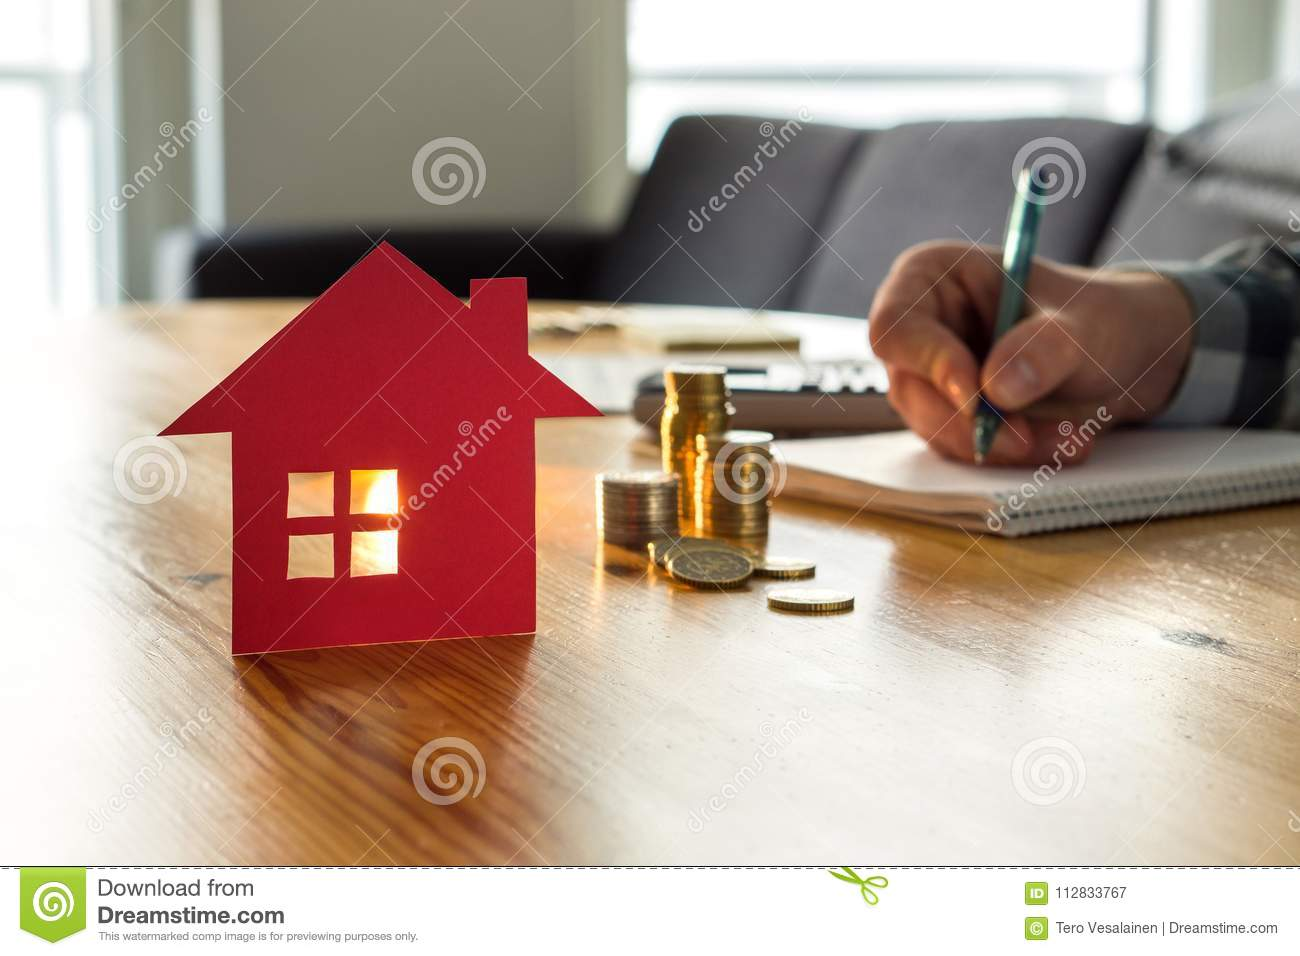 Man counting house price, home insurance cost, property value.